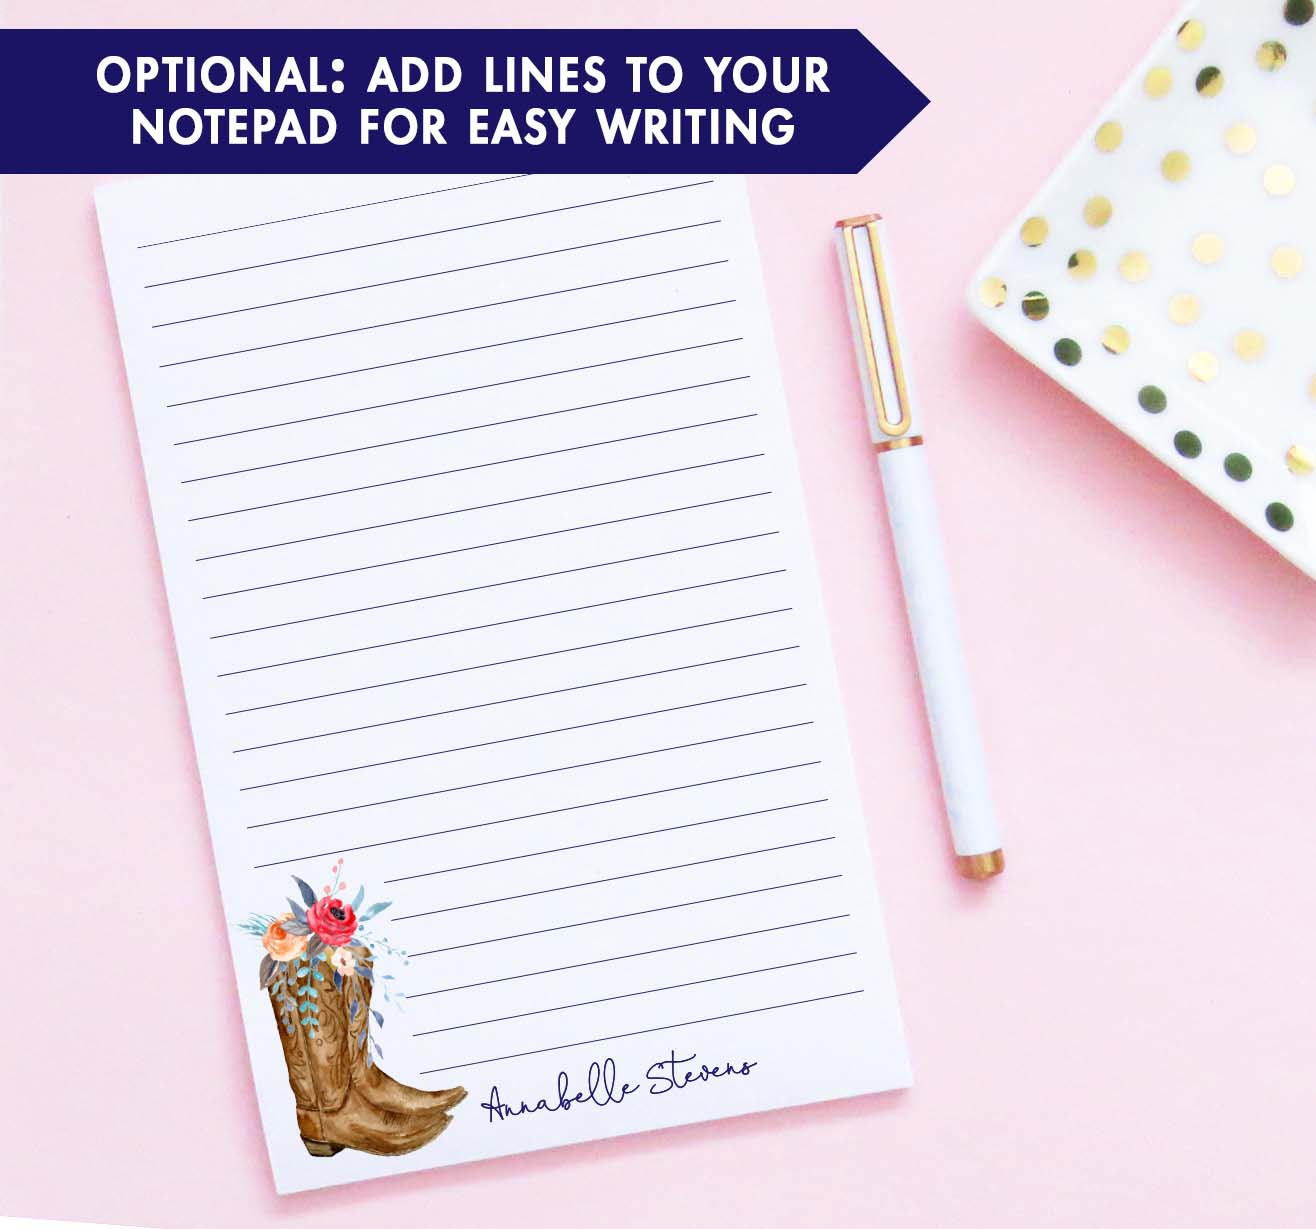 NP229 floral cowboy boots notepads personalized for women elegant western